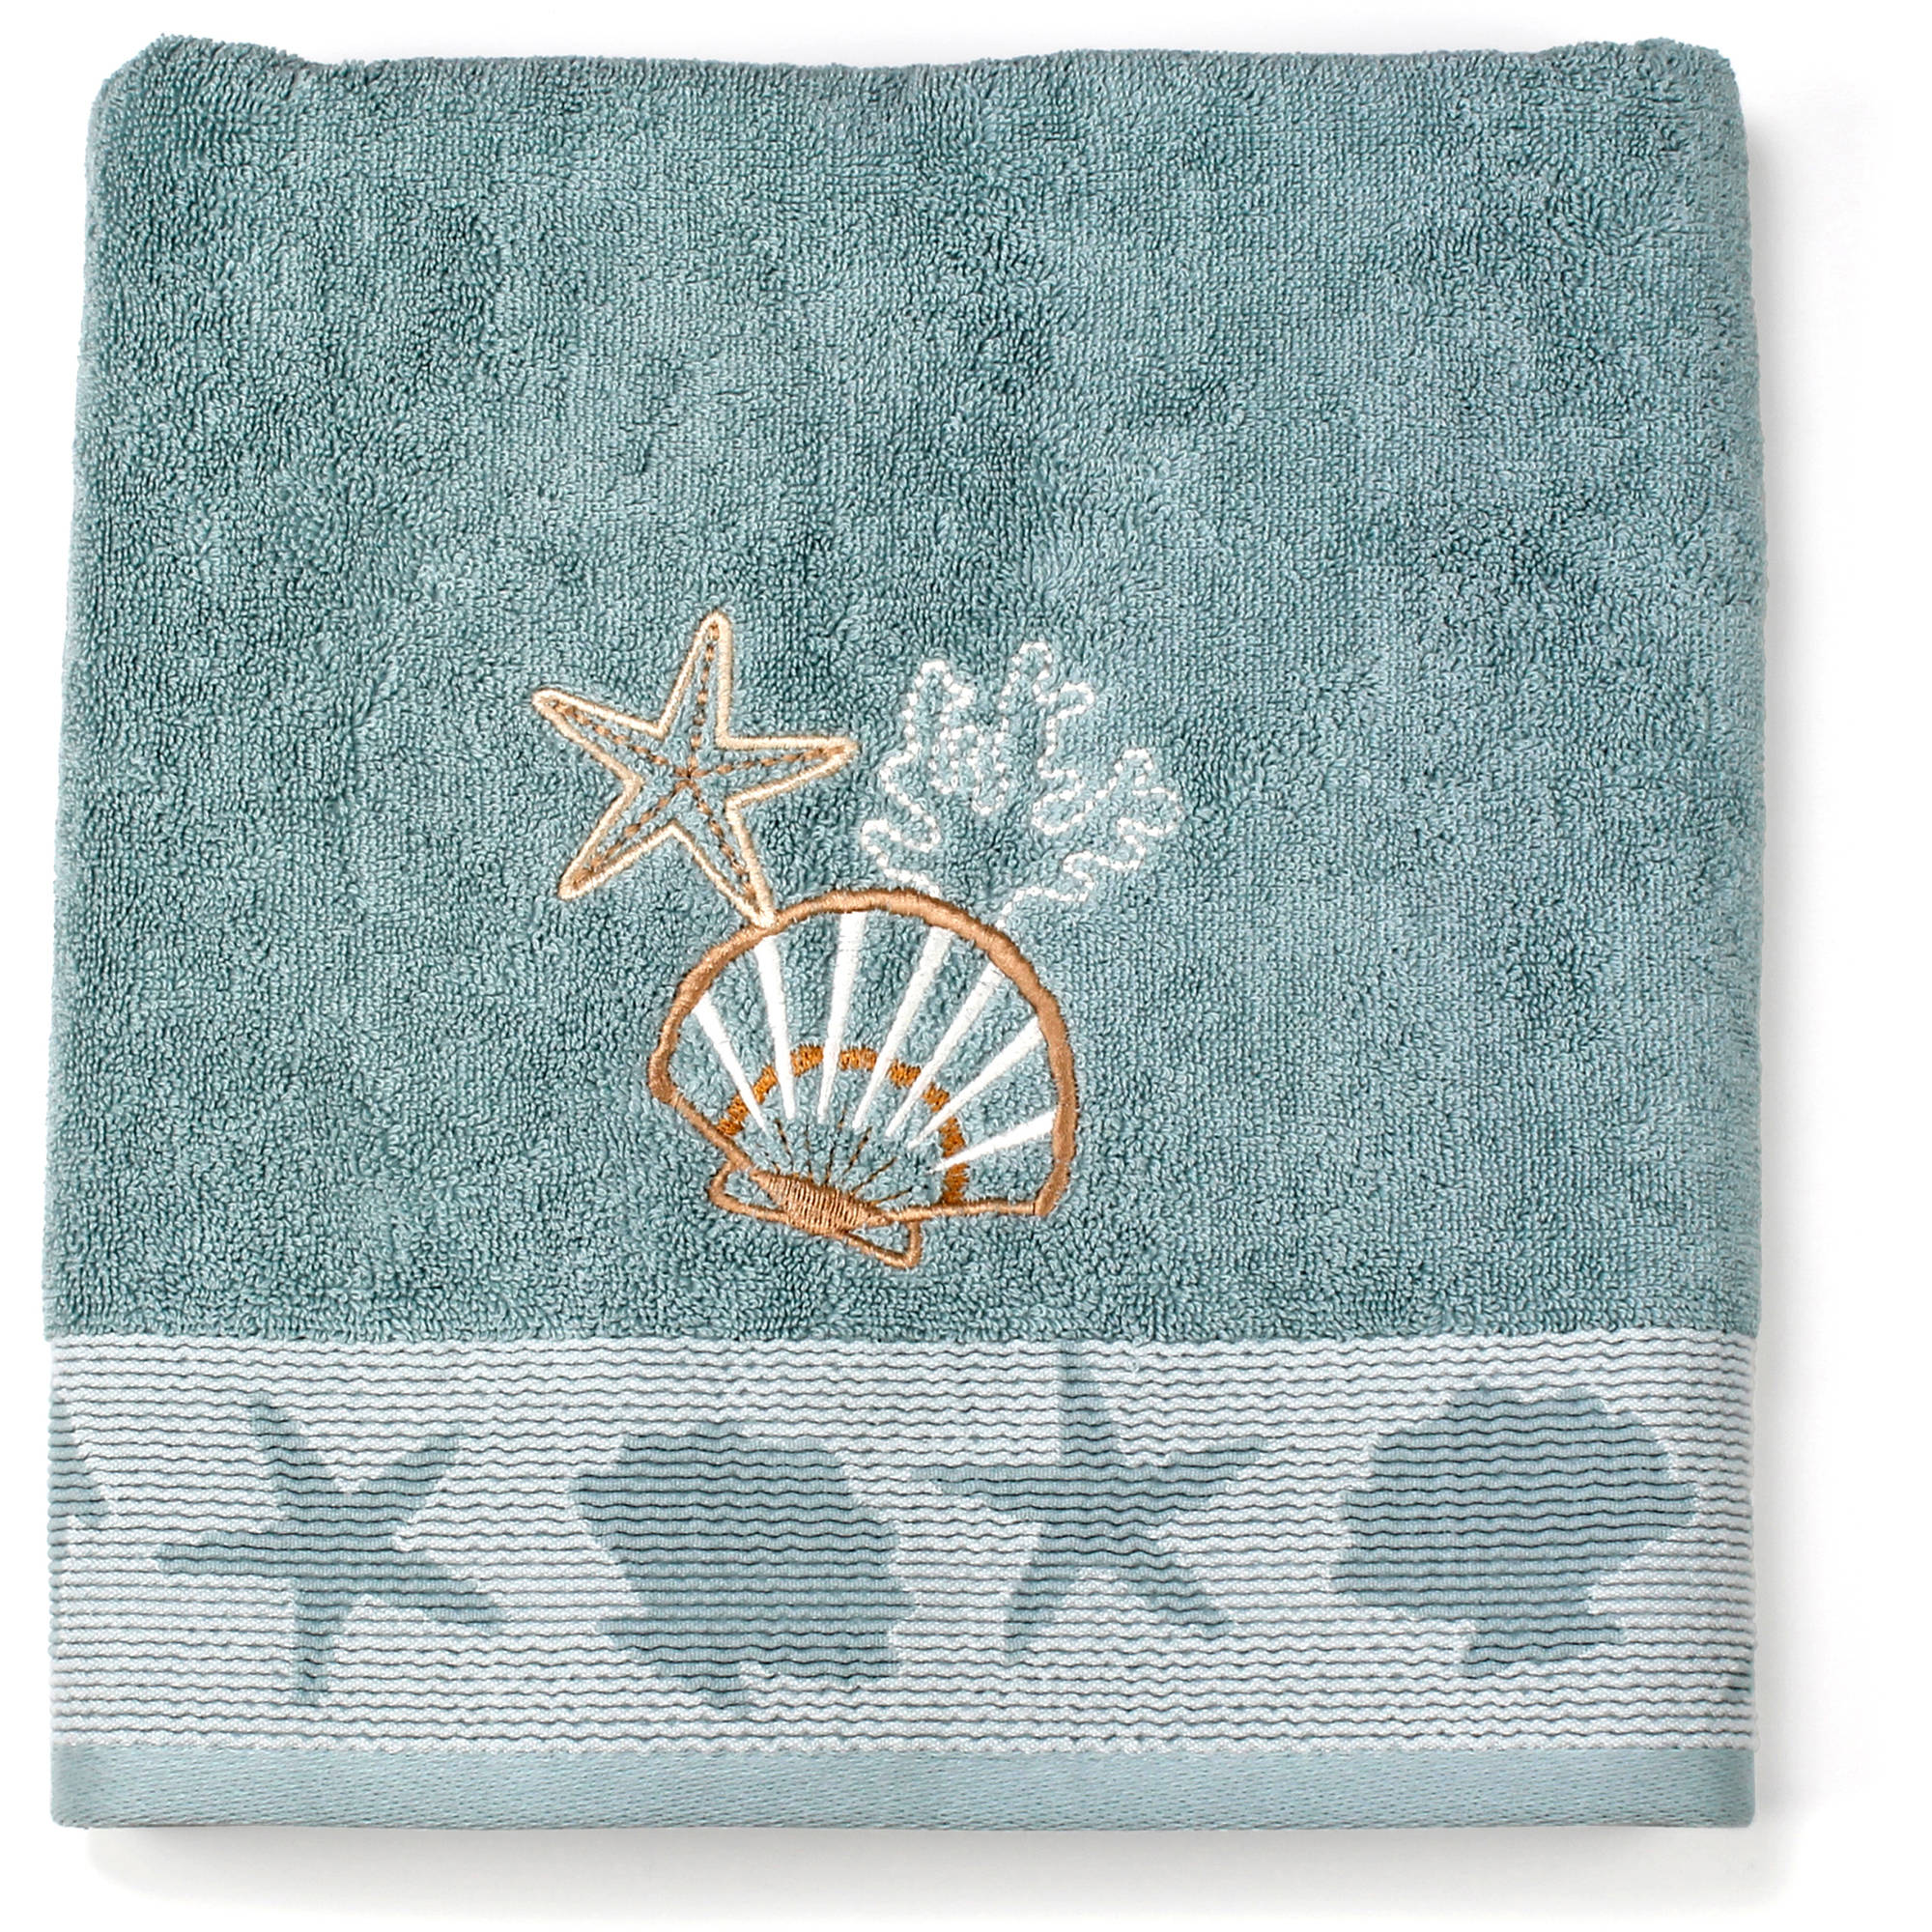 Better Homes and Gardens Coastal Bath Towel